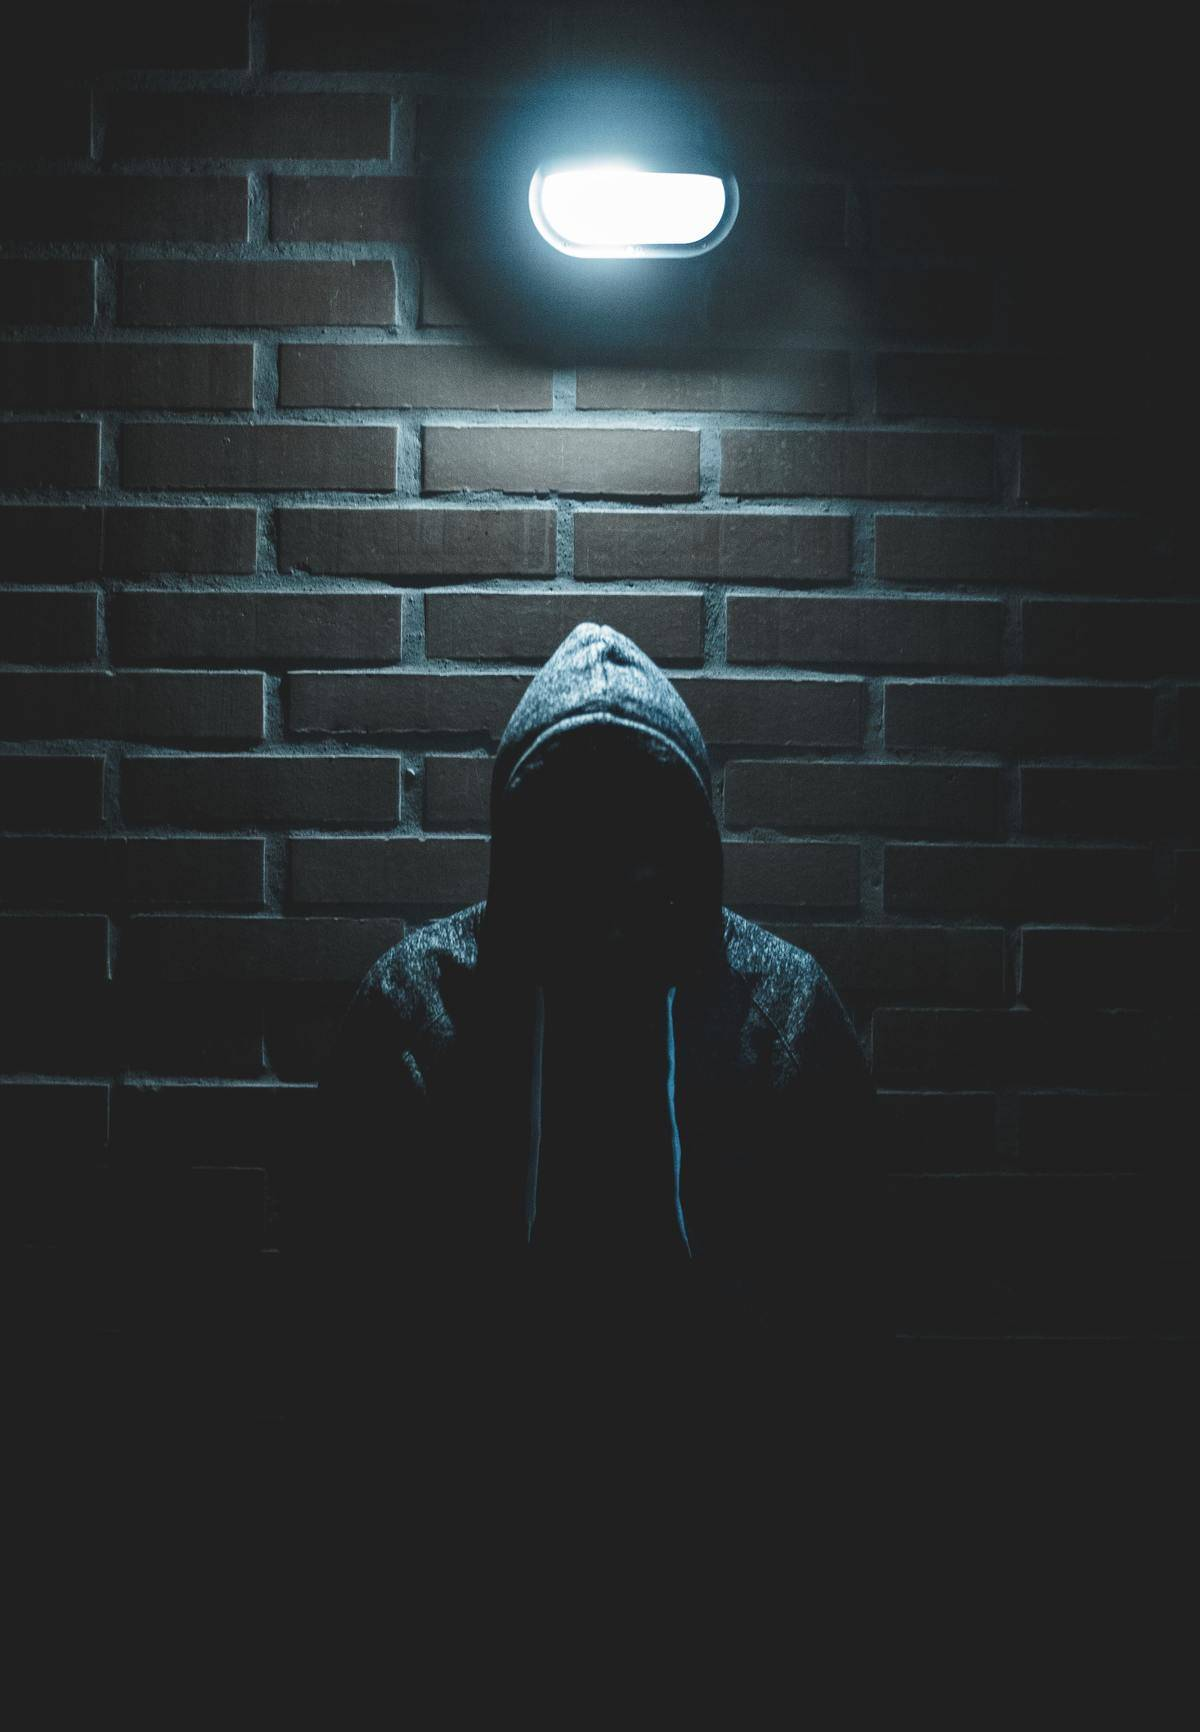 Man stands under streetlight wearing a hoodie with his face darkened by shadows